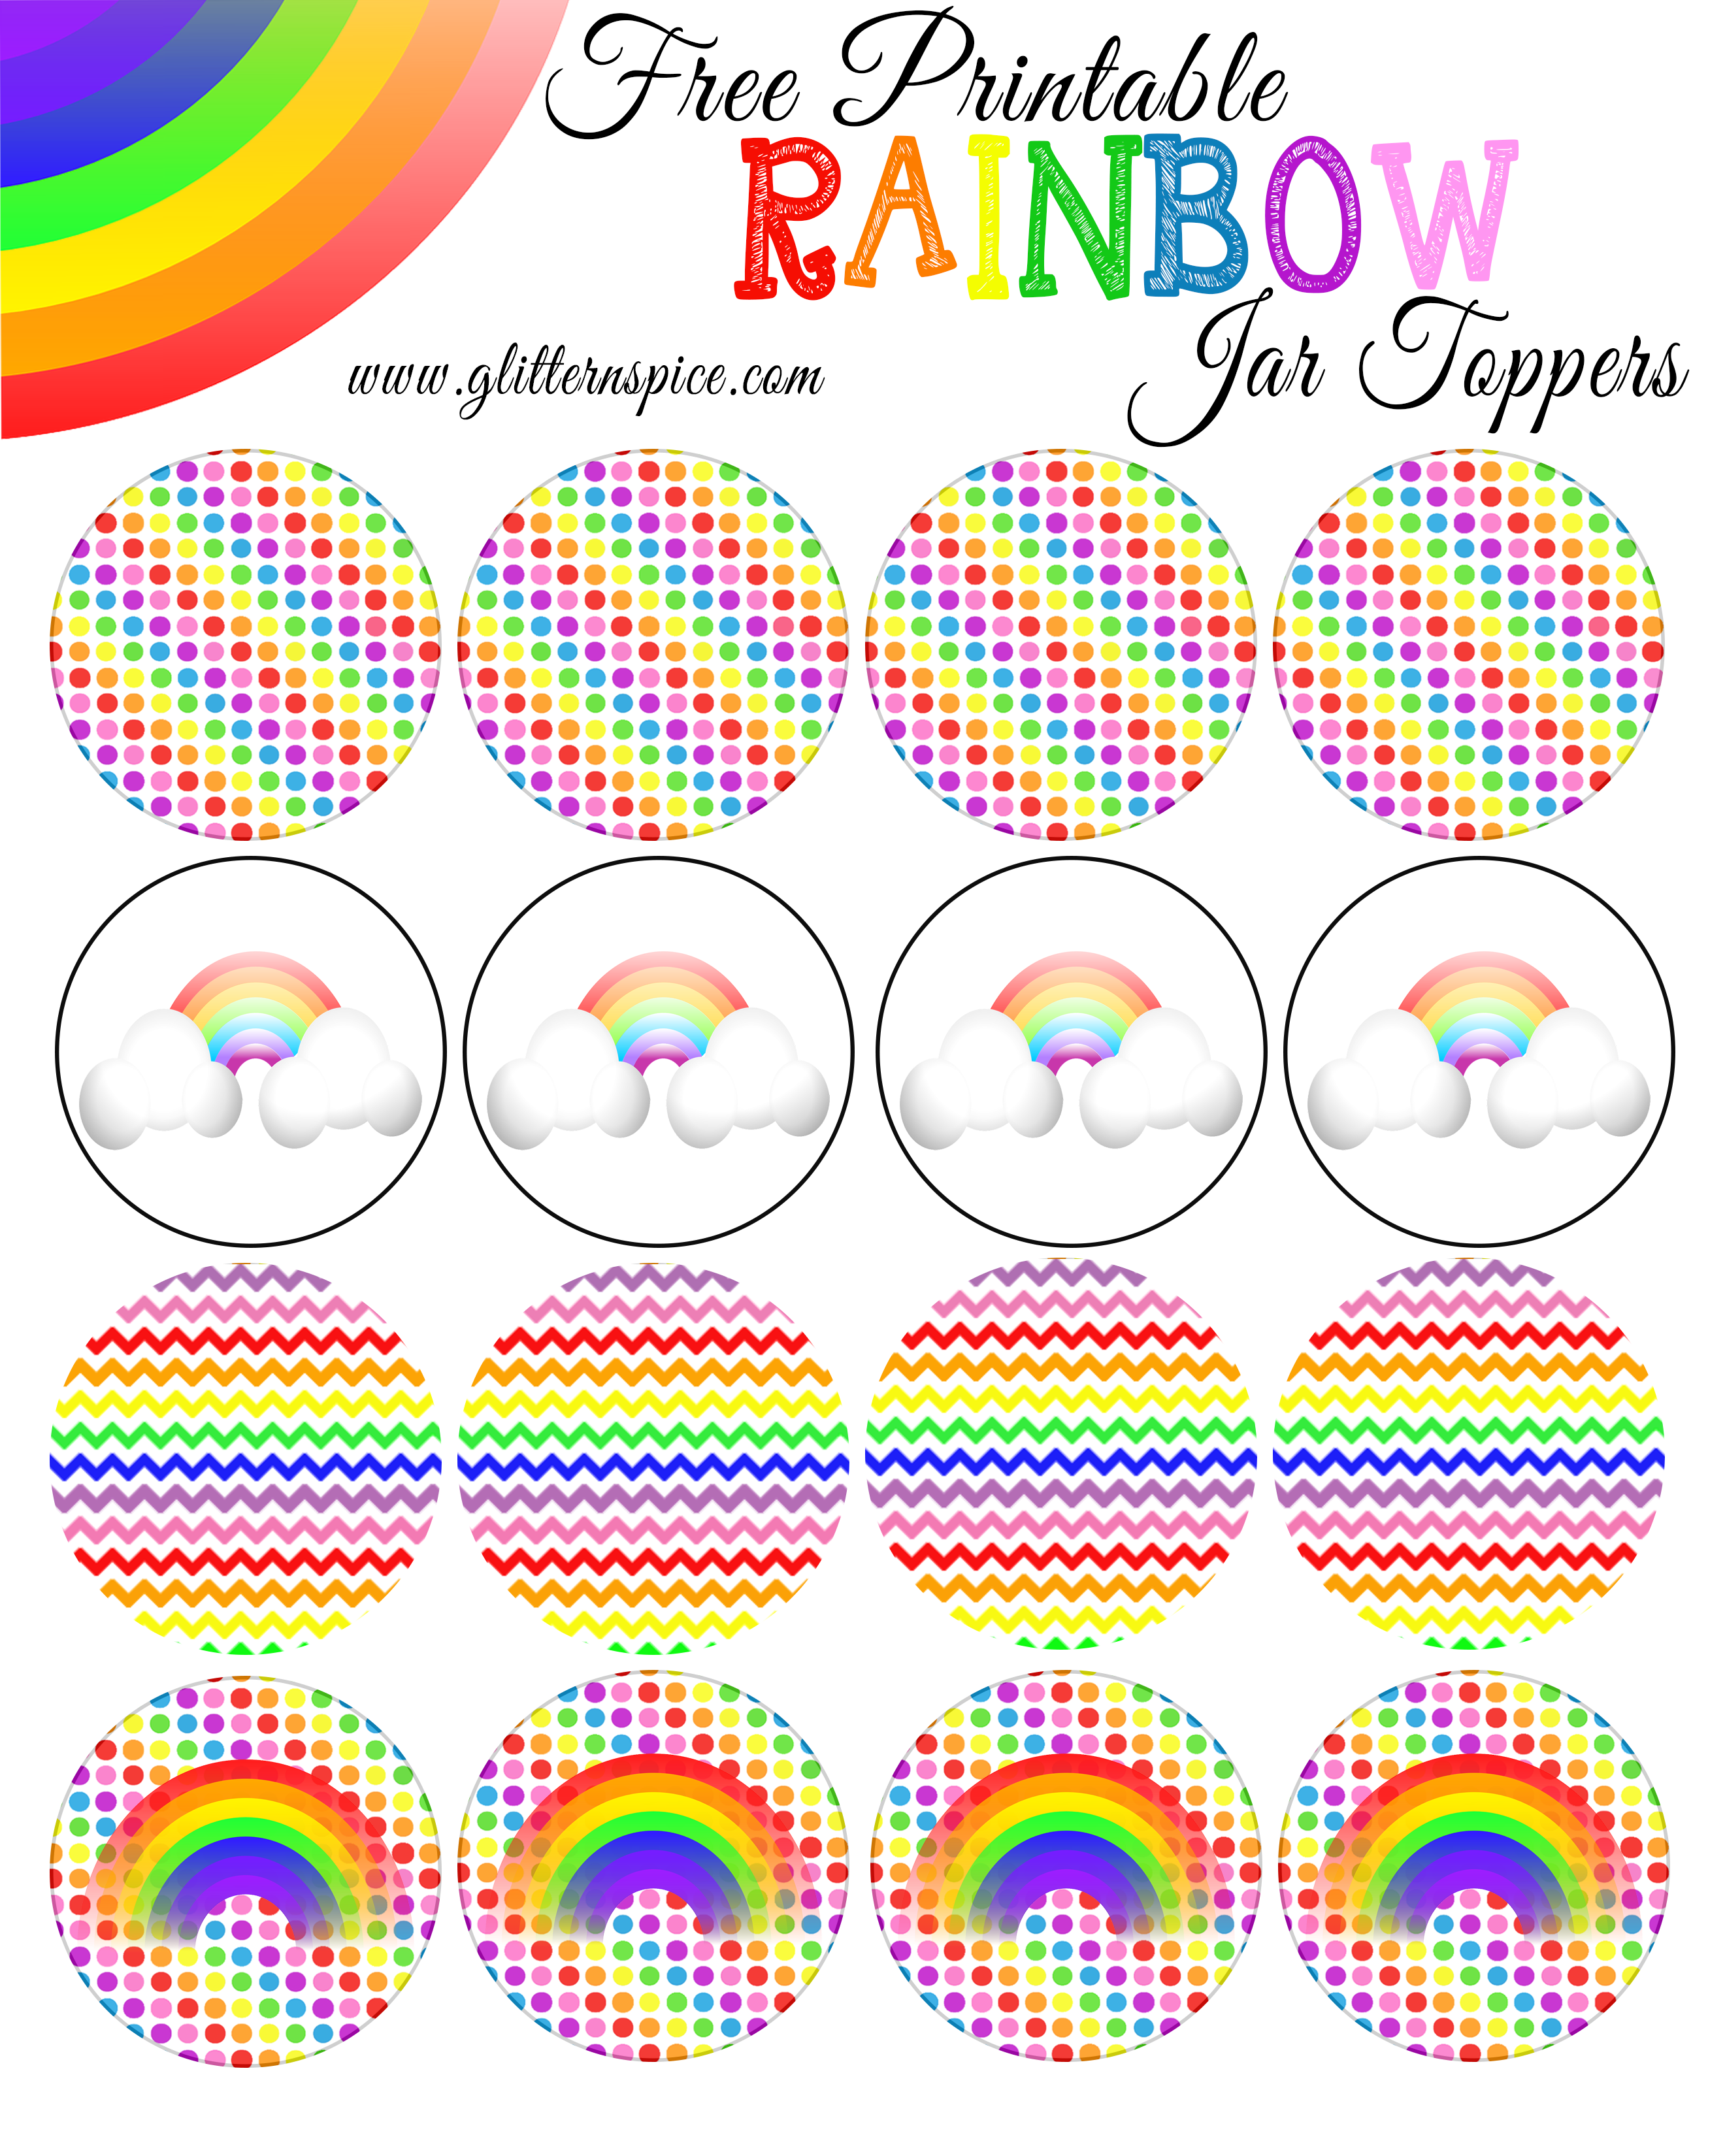 Rainbow In A Jar | Free Rainbow Printables | Glitter 'N Spice